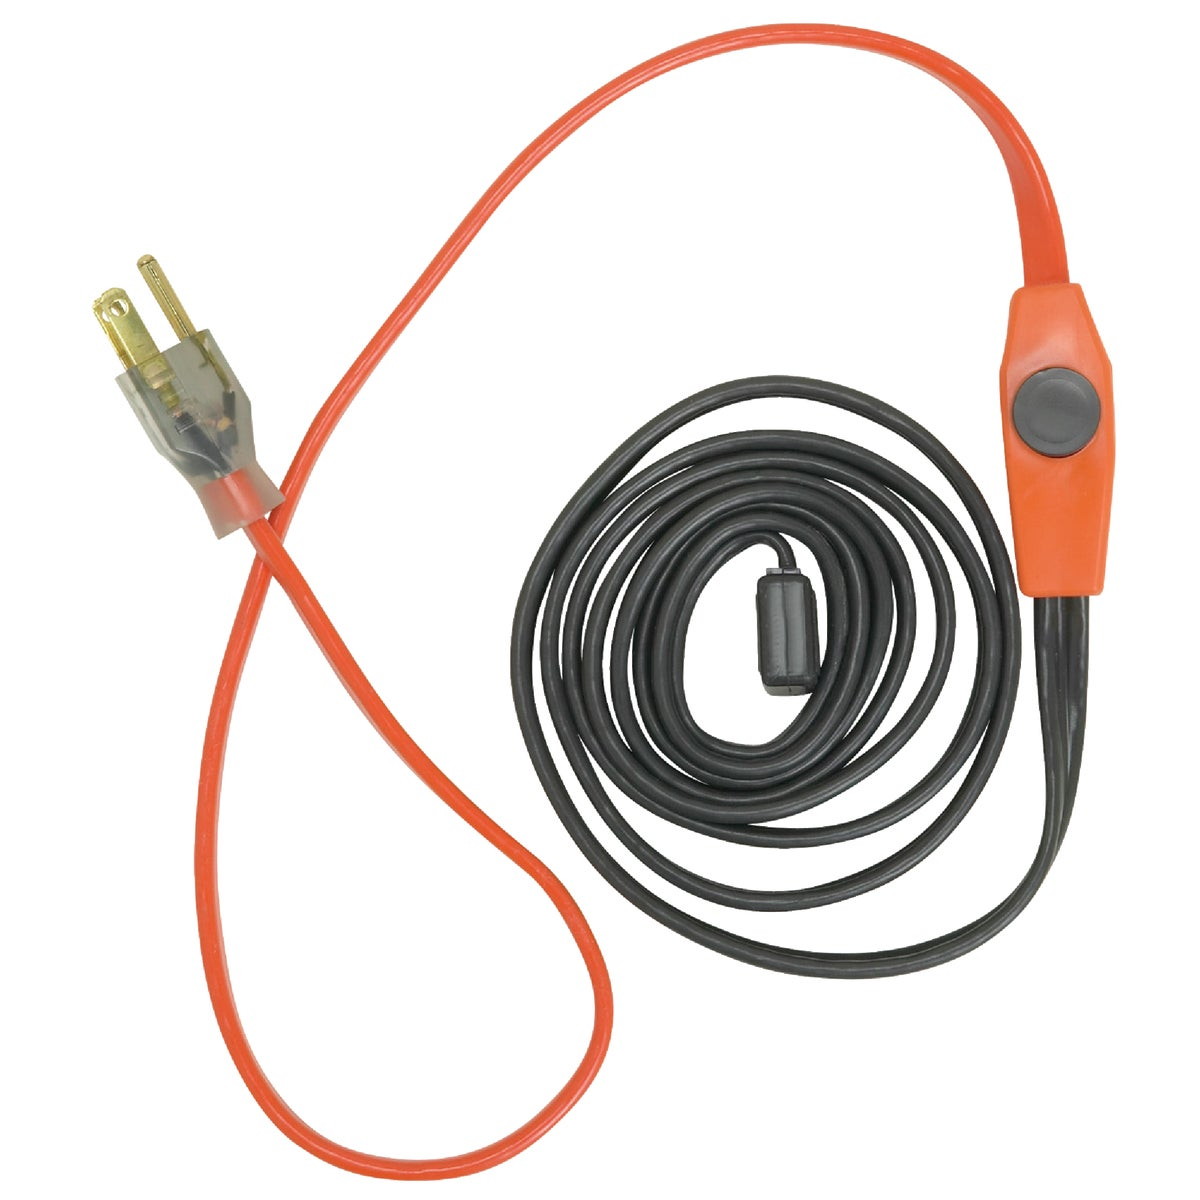 6' PIPE HEATING CABLE - AHB016 by Easy Heat Inc